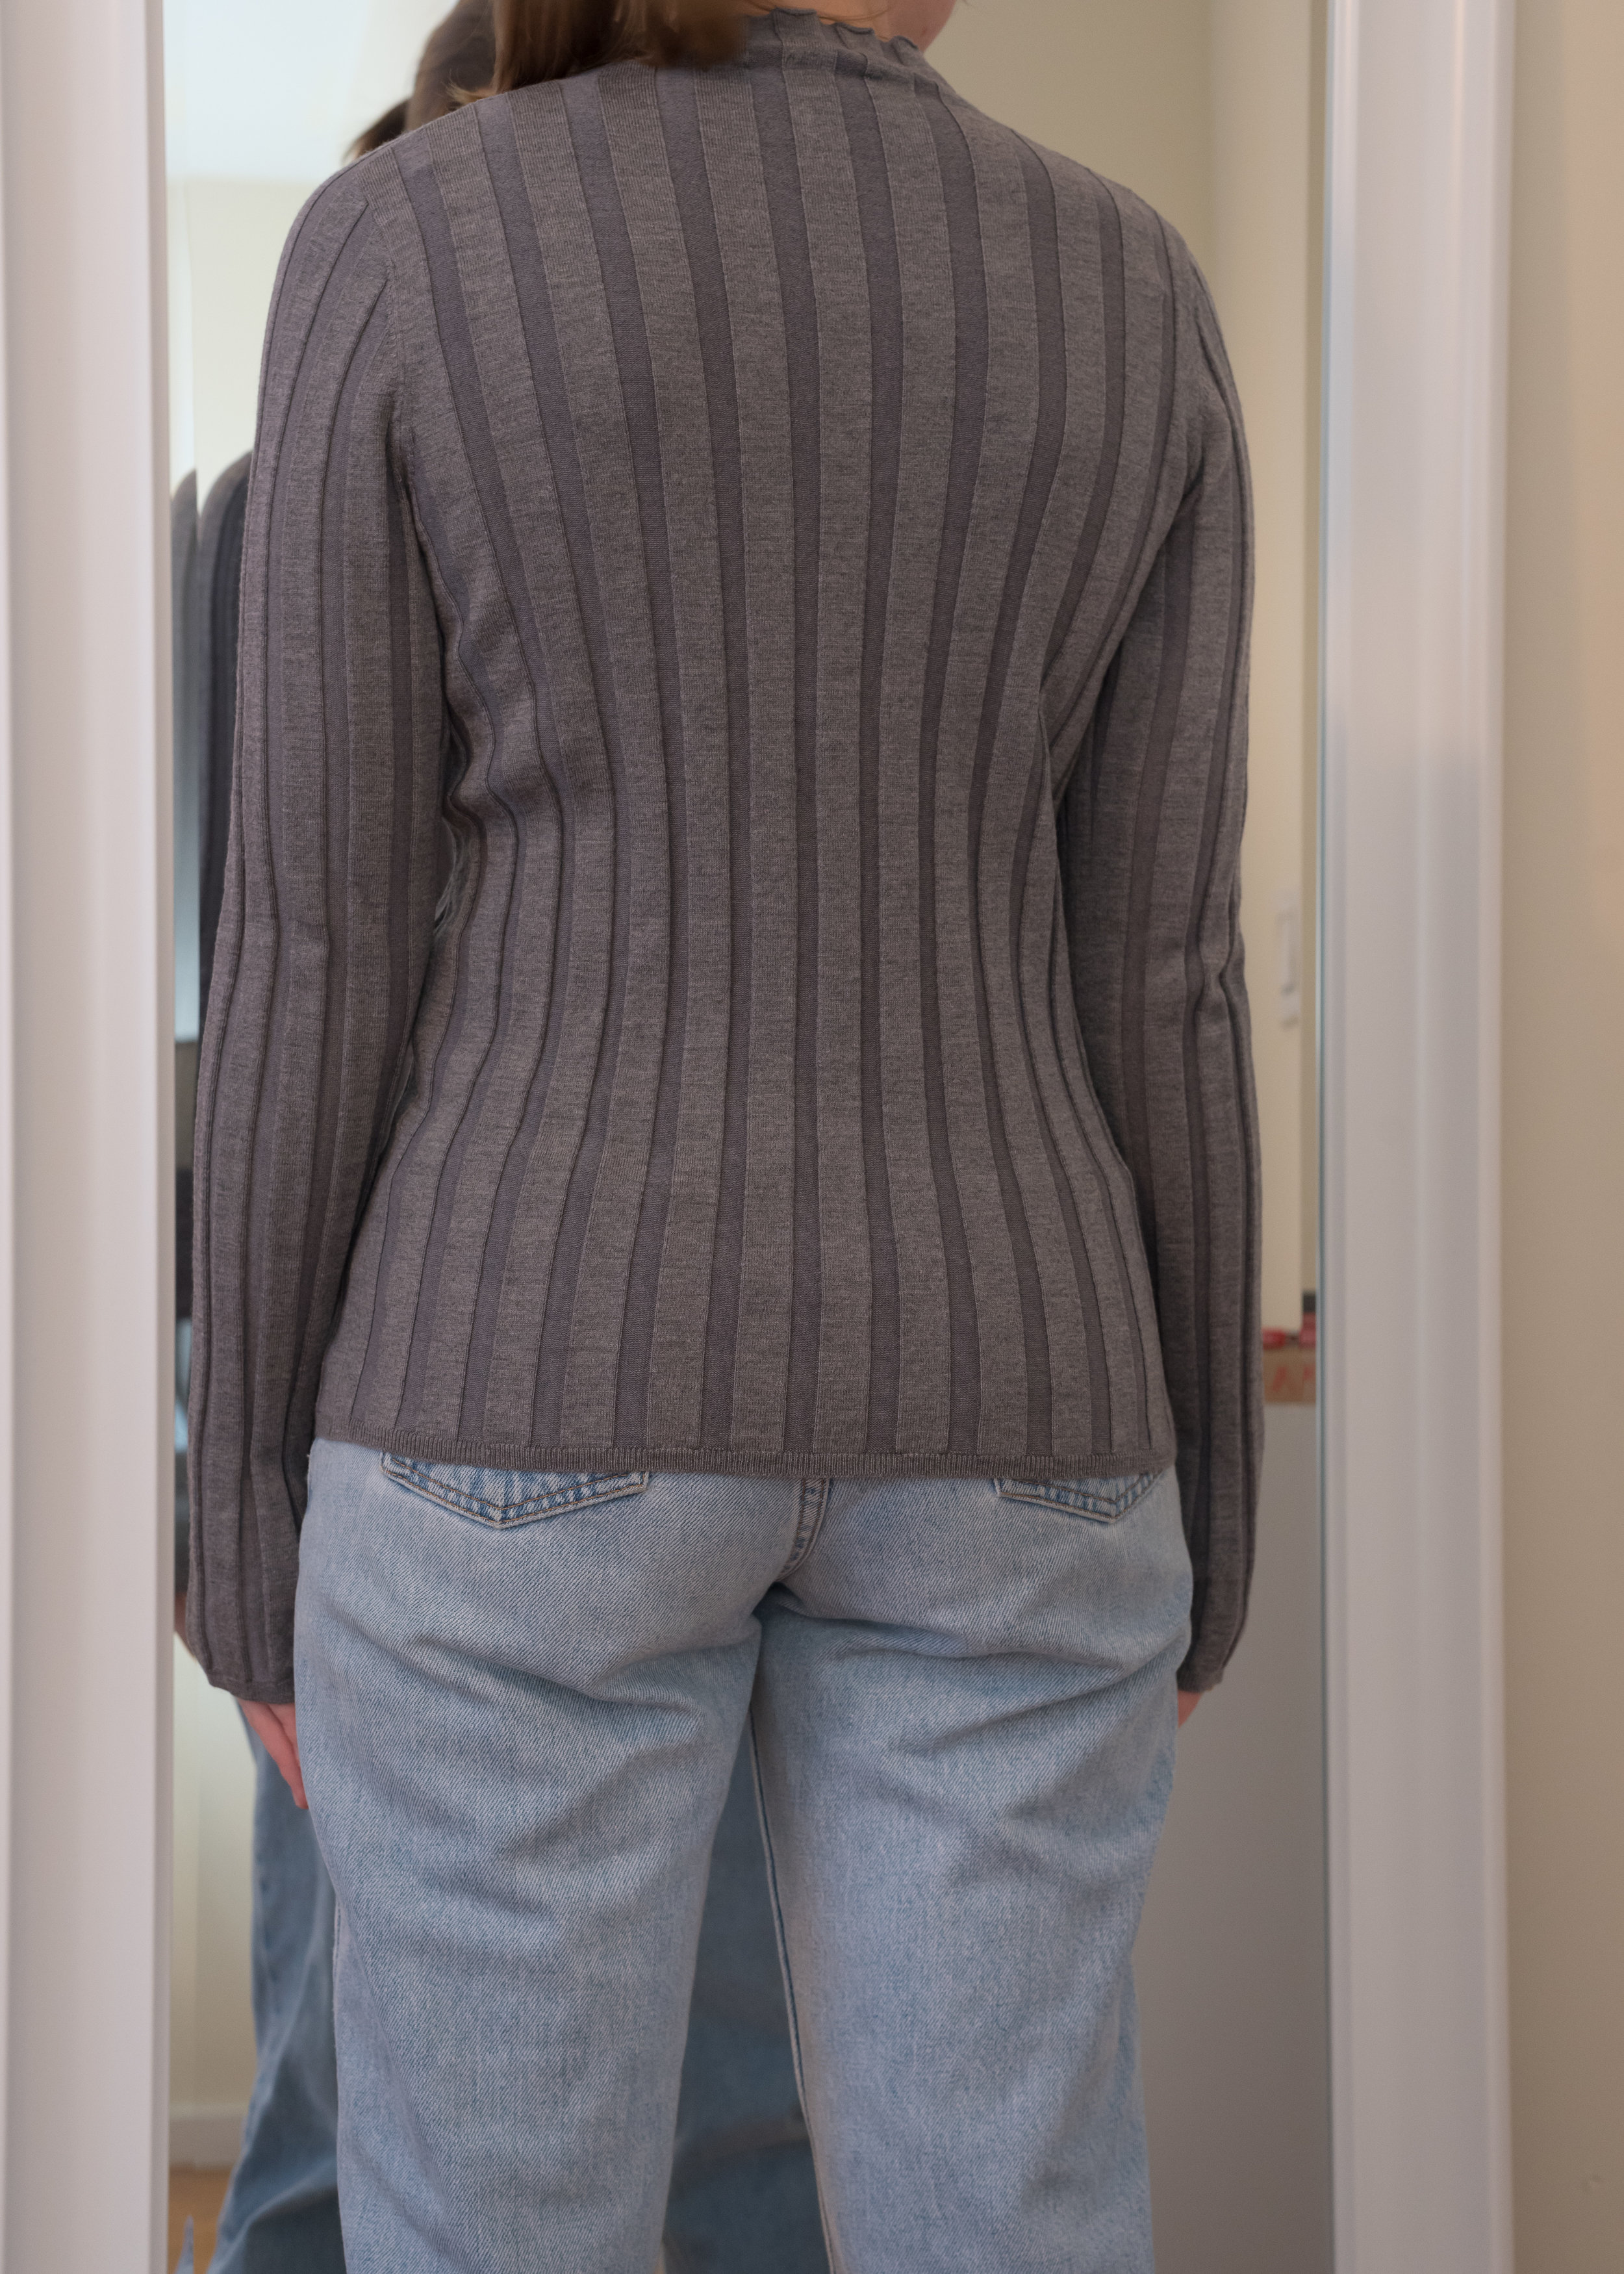 Everlane Luxe Wool Rib Mockneck Sweater - Back View